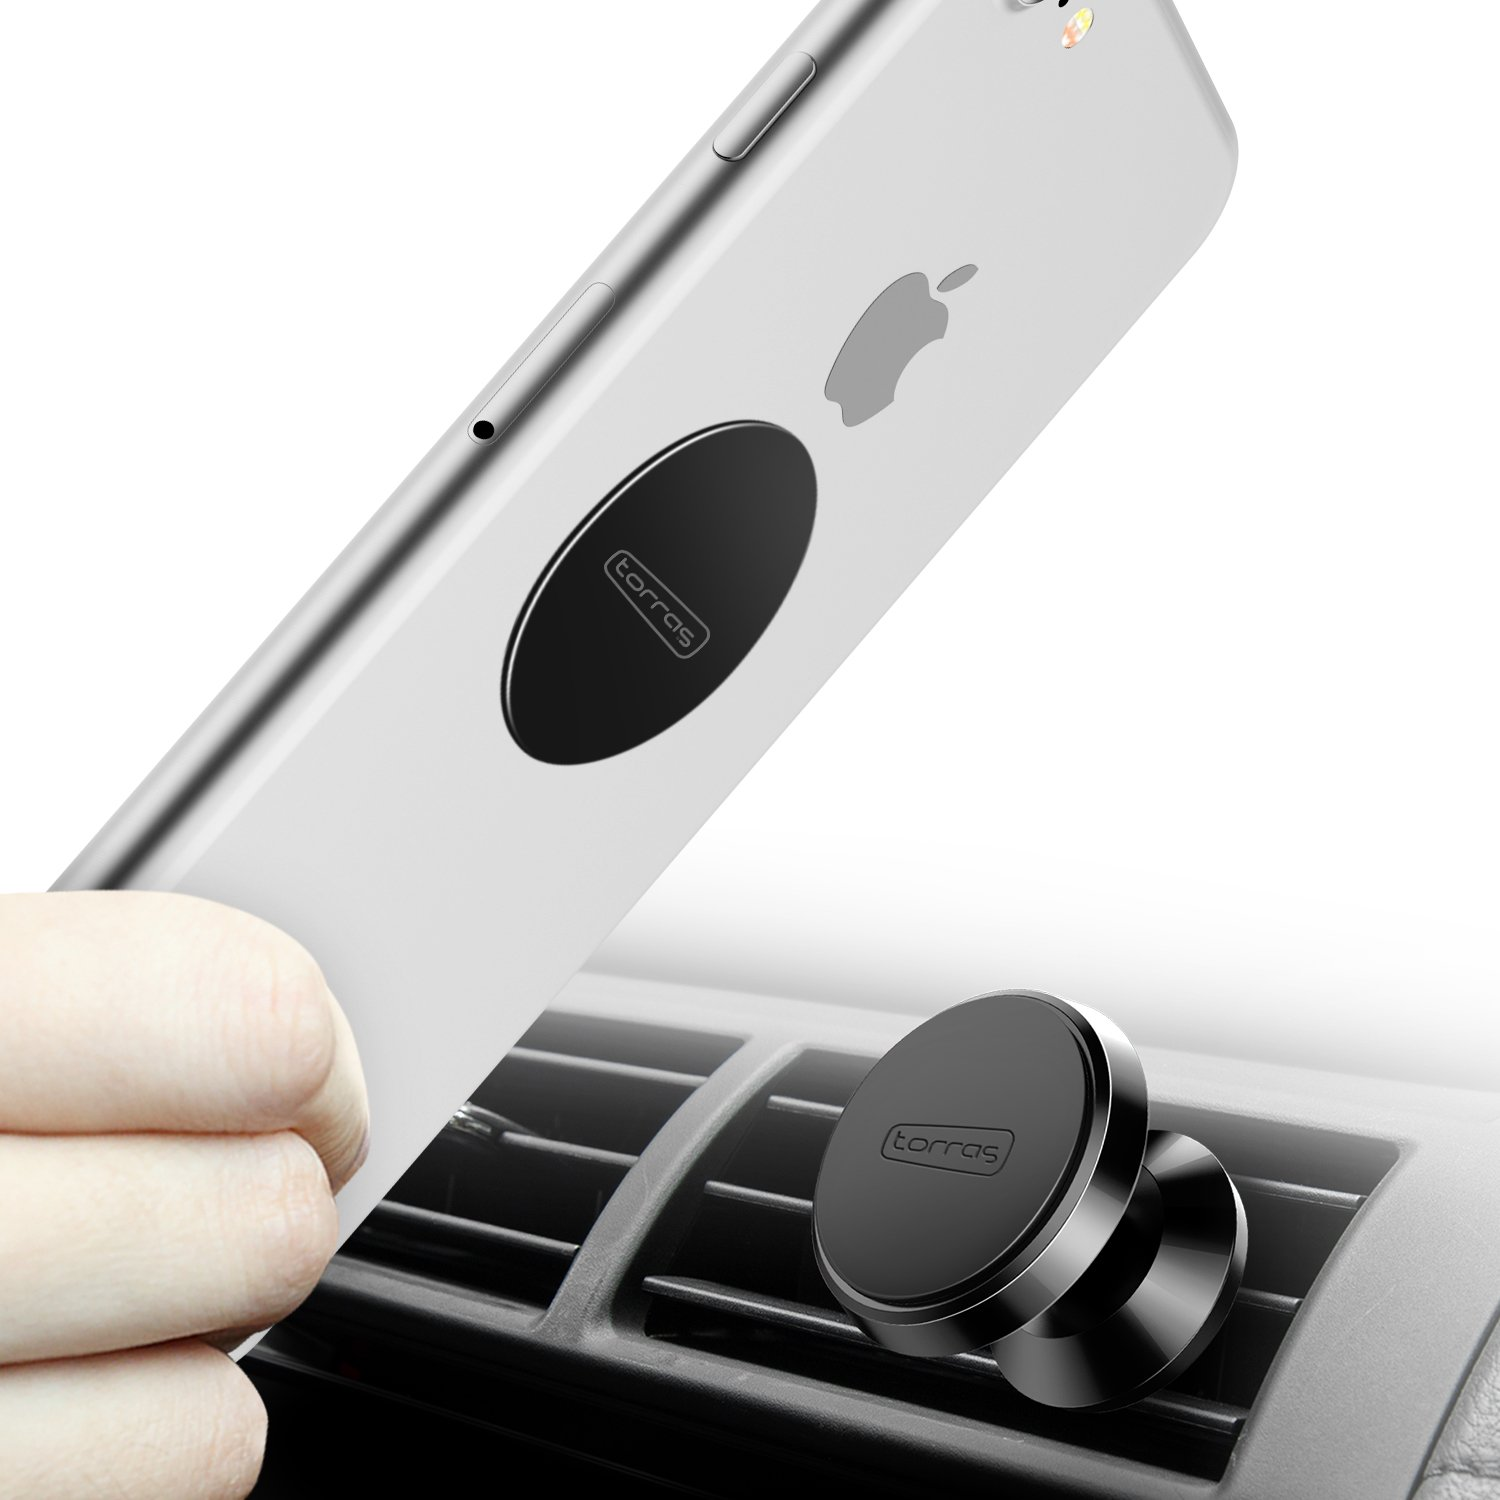 TORRAS Magnetic Car Mount Holder, 360° Rotation Air Vent Cell Phone Holder Car Cradle Mount Samsung Galaxy S9 / S9+ Plus / S8 / S8+ Plus / S7, iPhone X / 8/7 / 6, LG, GPS More - Black